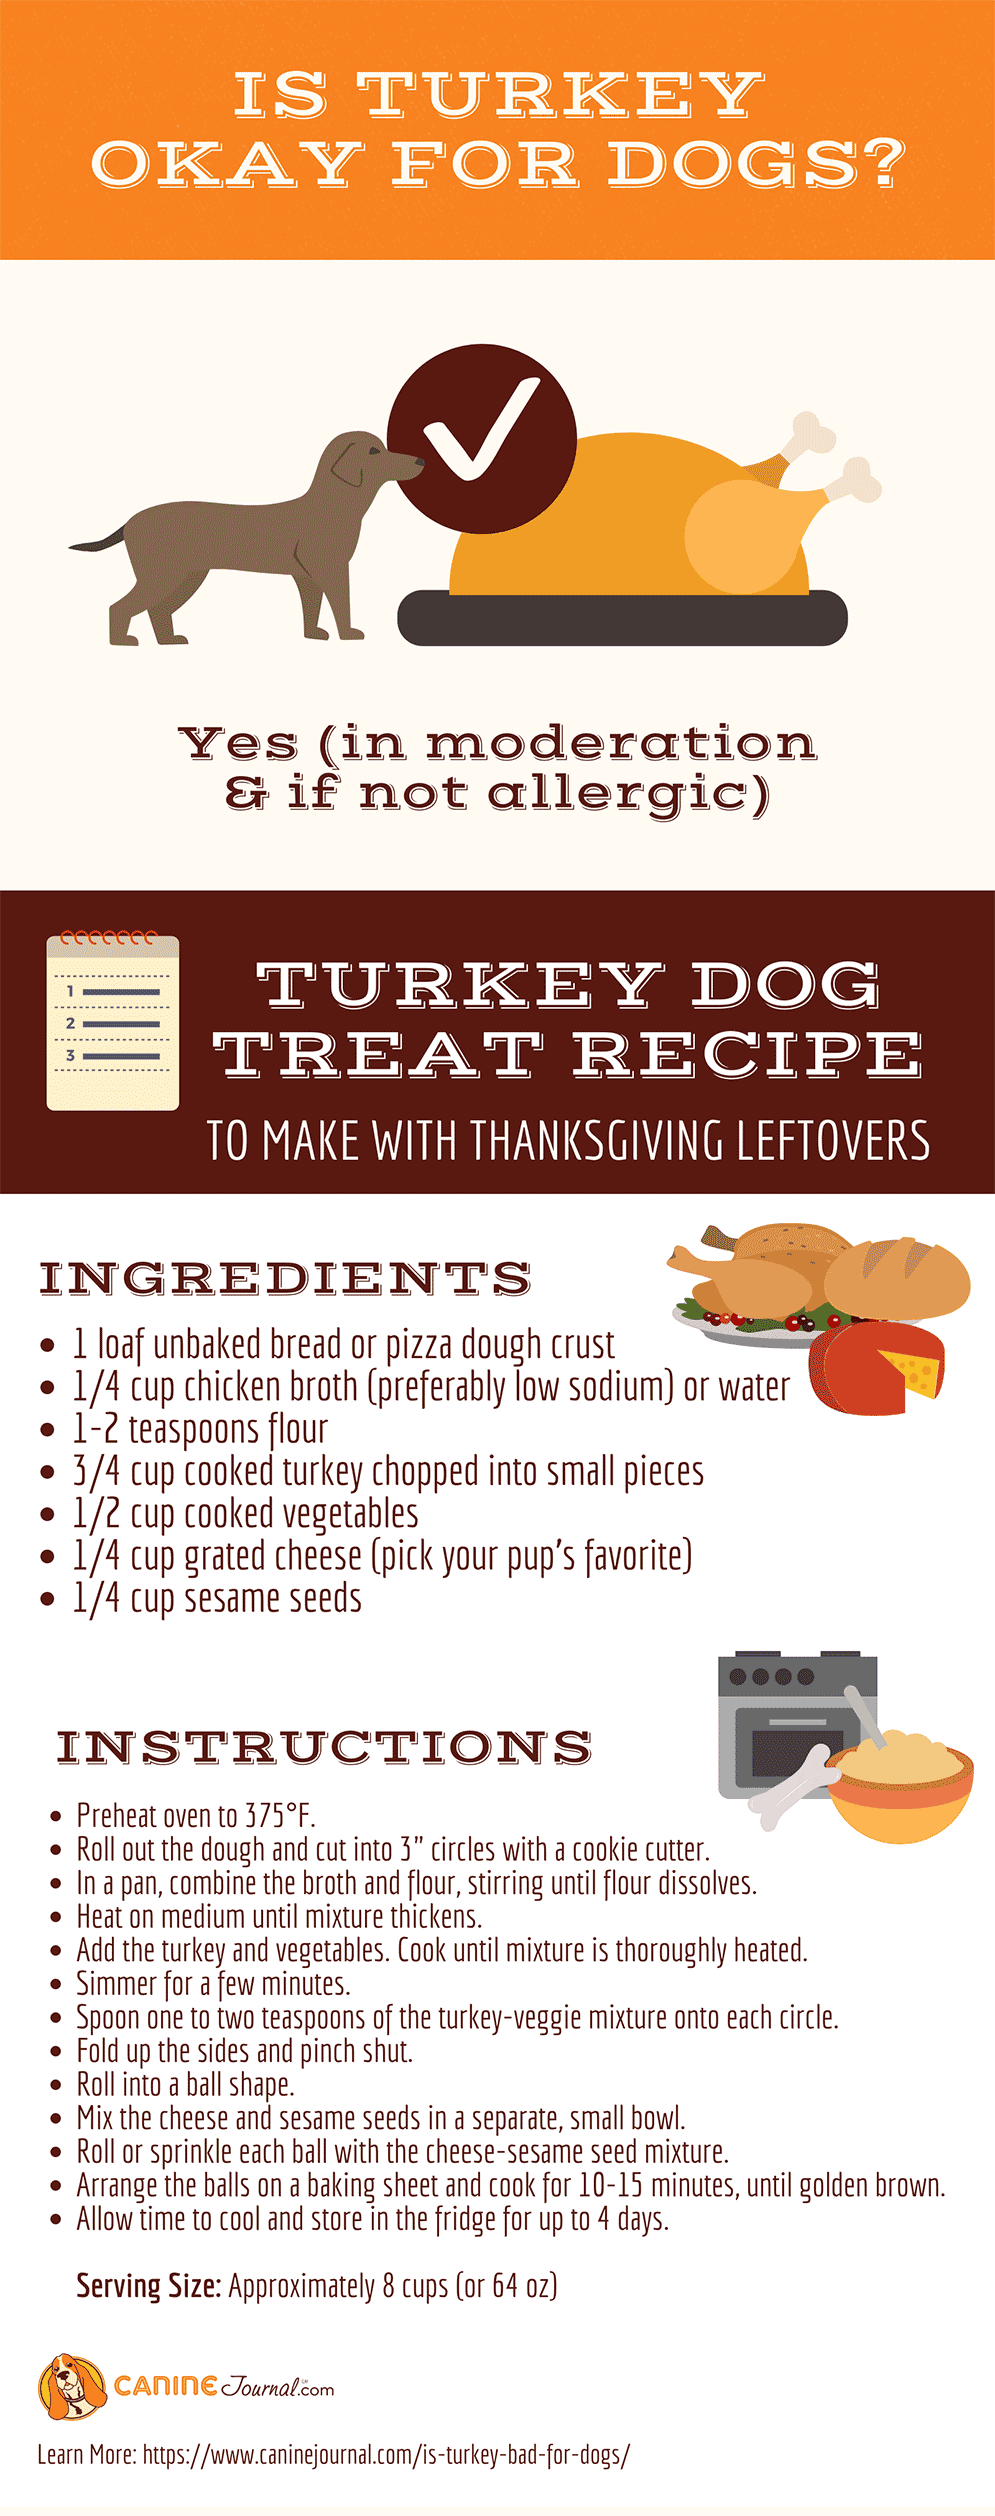 Can Dogs Eat Turkey and Turkey Treat Recipe Graphic